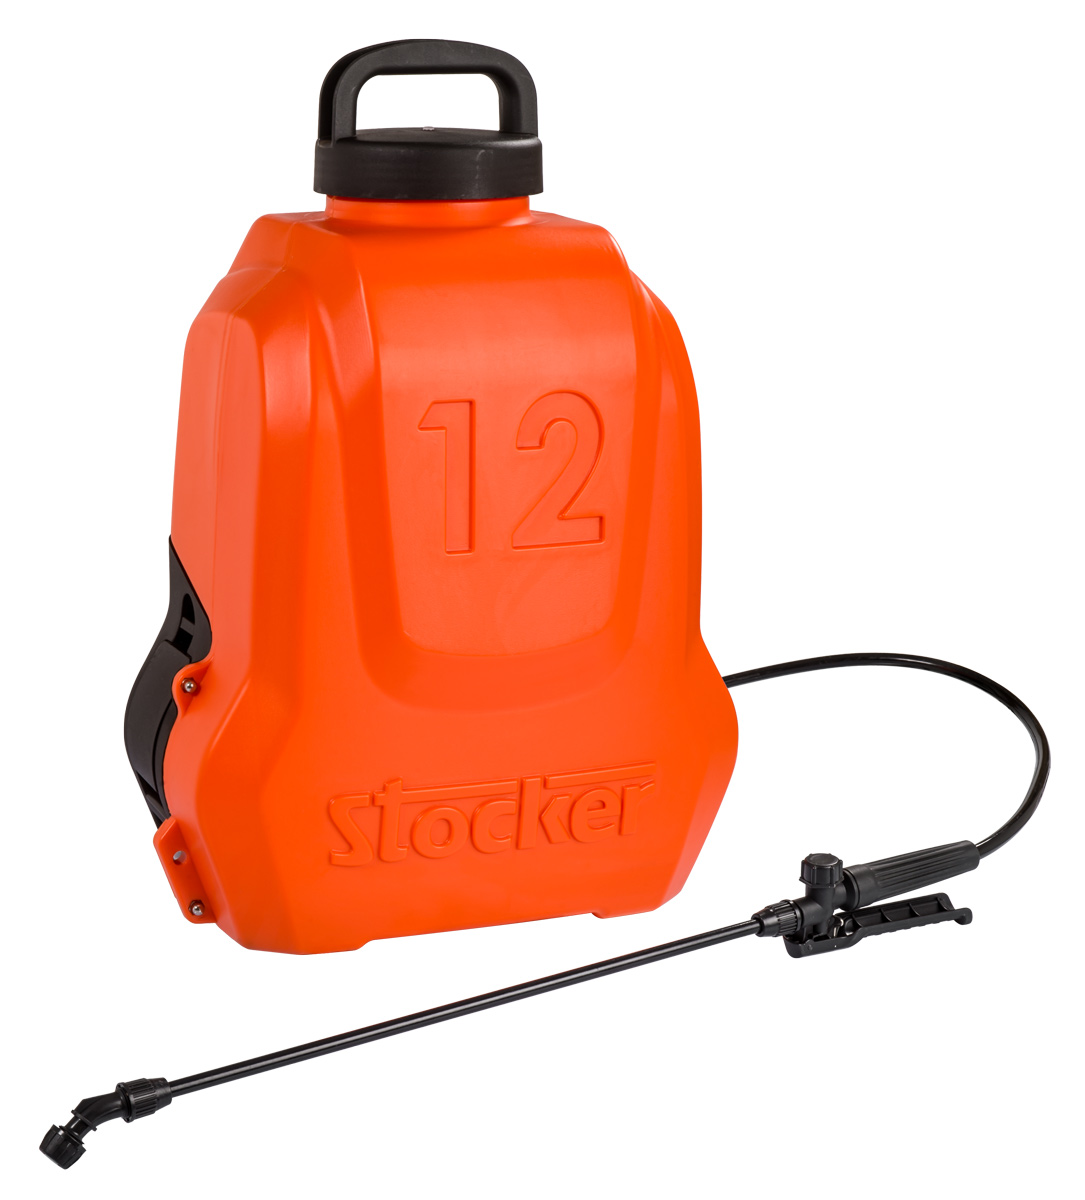 Batteria pompa Stocker al  Litio ion  per a zaino 12V 2,5 Ah ricambio originale